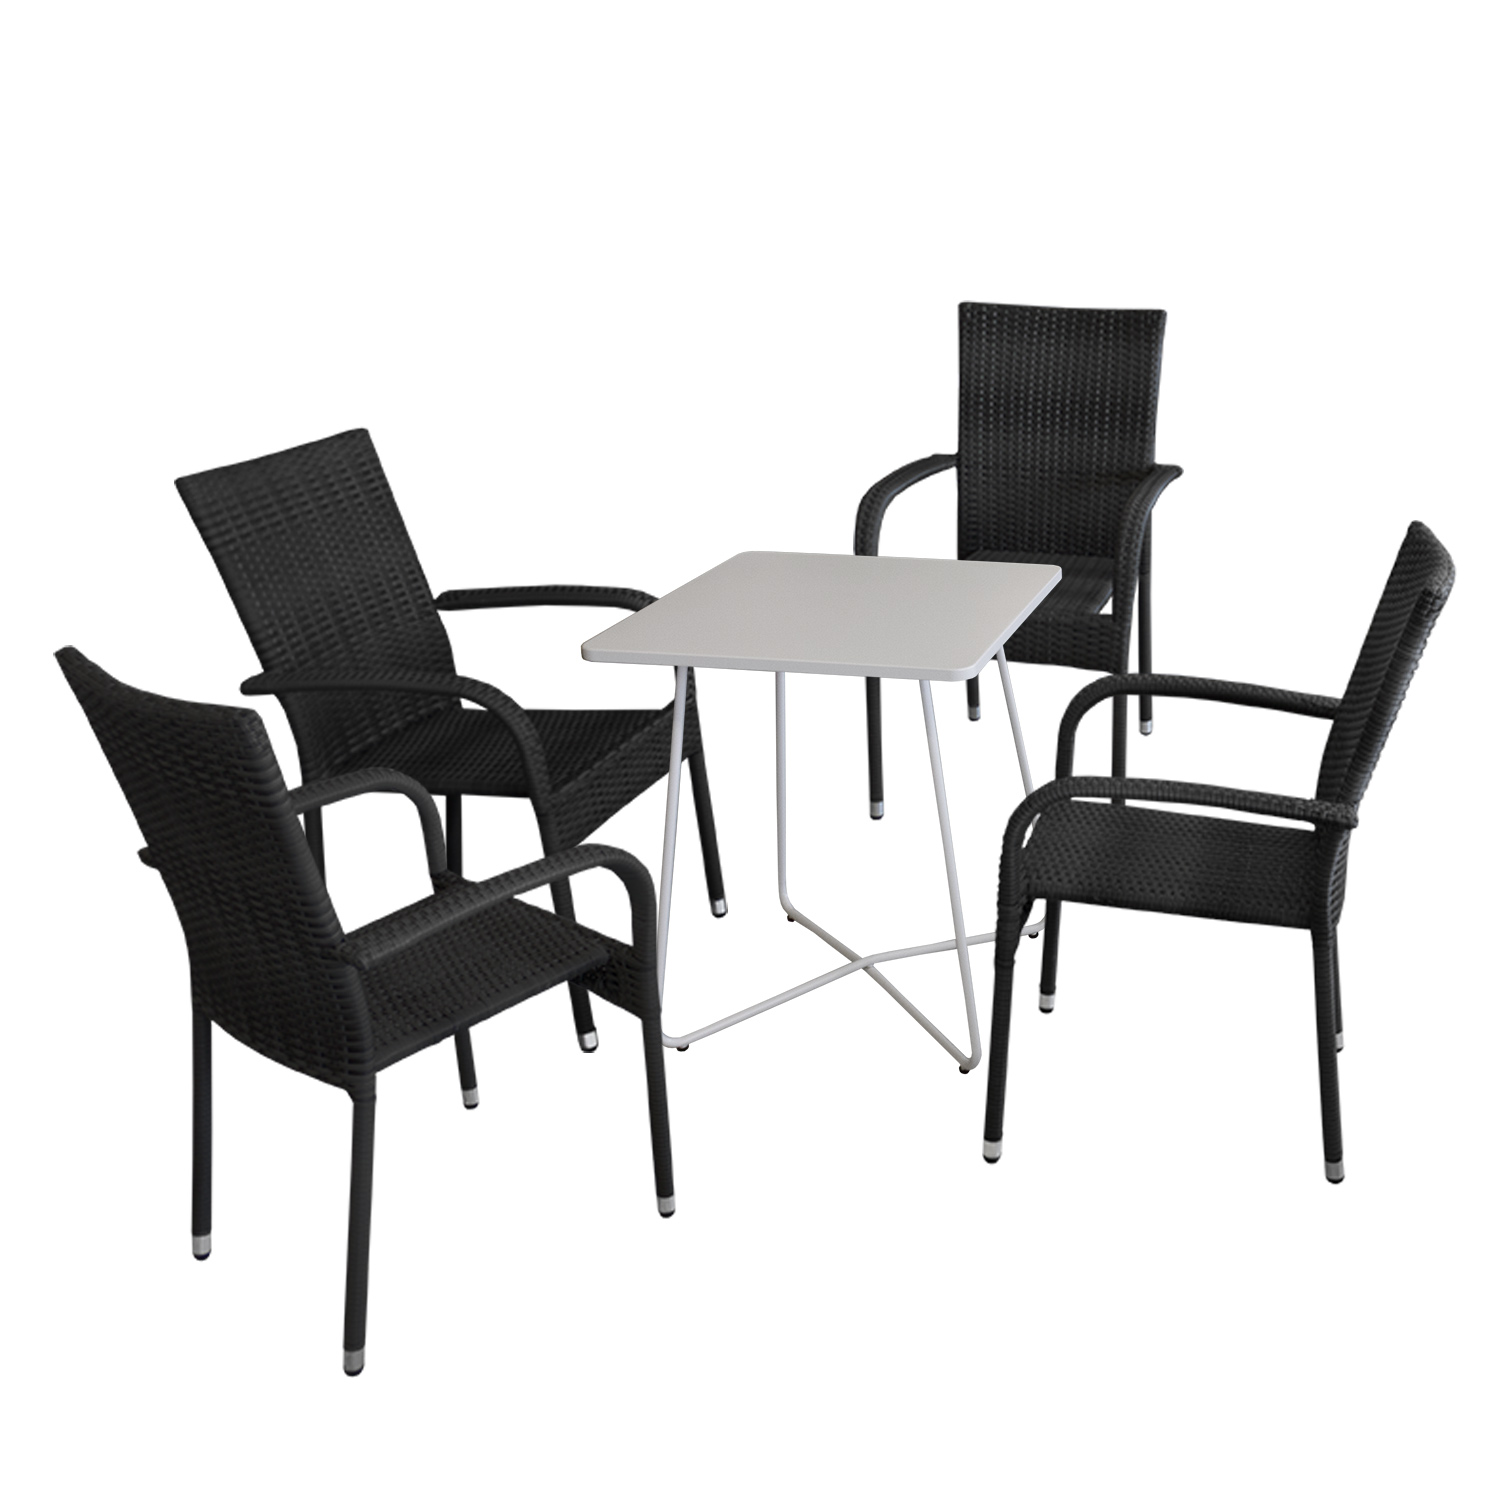 5tlg balkonm bel set bistrotisch 60x60cm wei 4x rattan gartensessel schwarz garten bistro. Black Bedroom Furniture Sets. Home Design Ideas